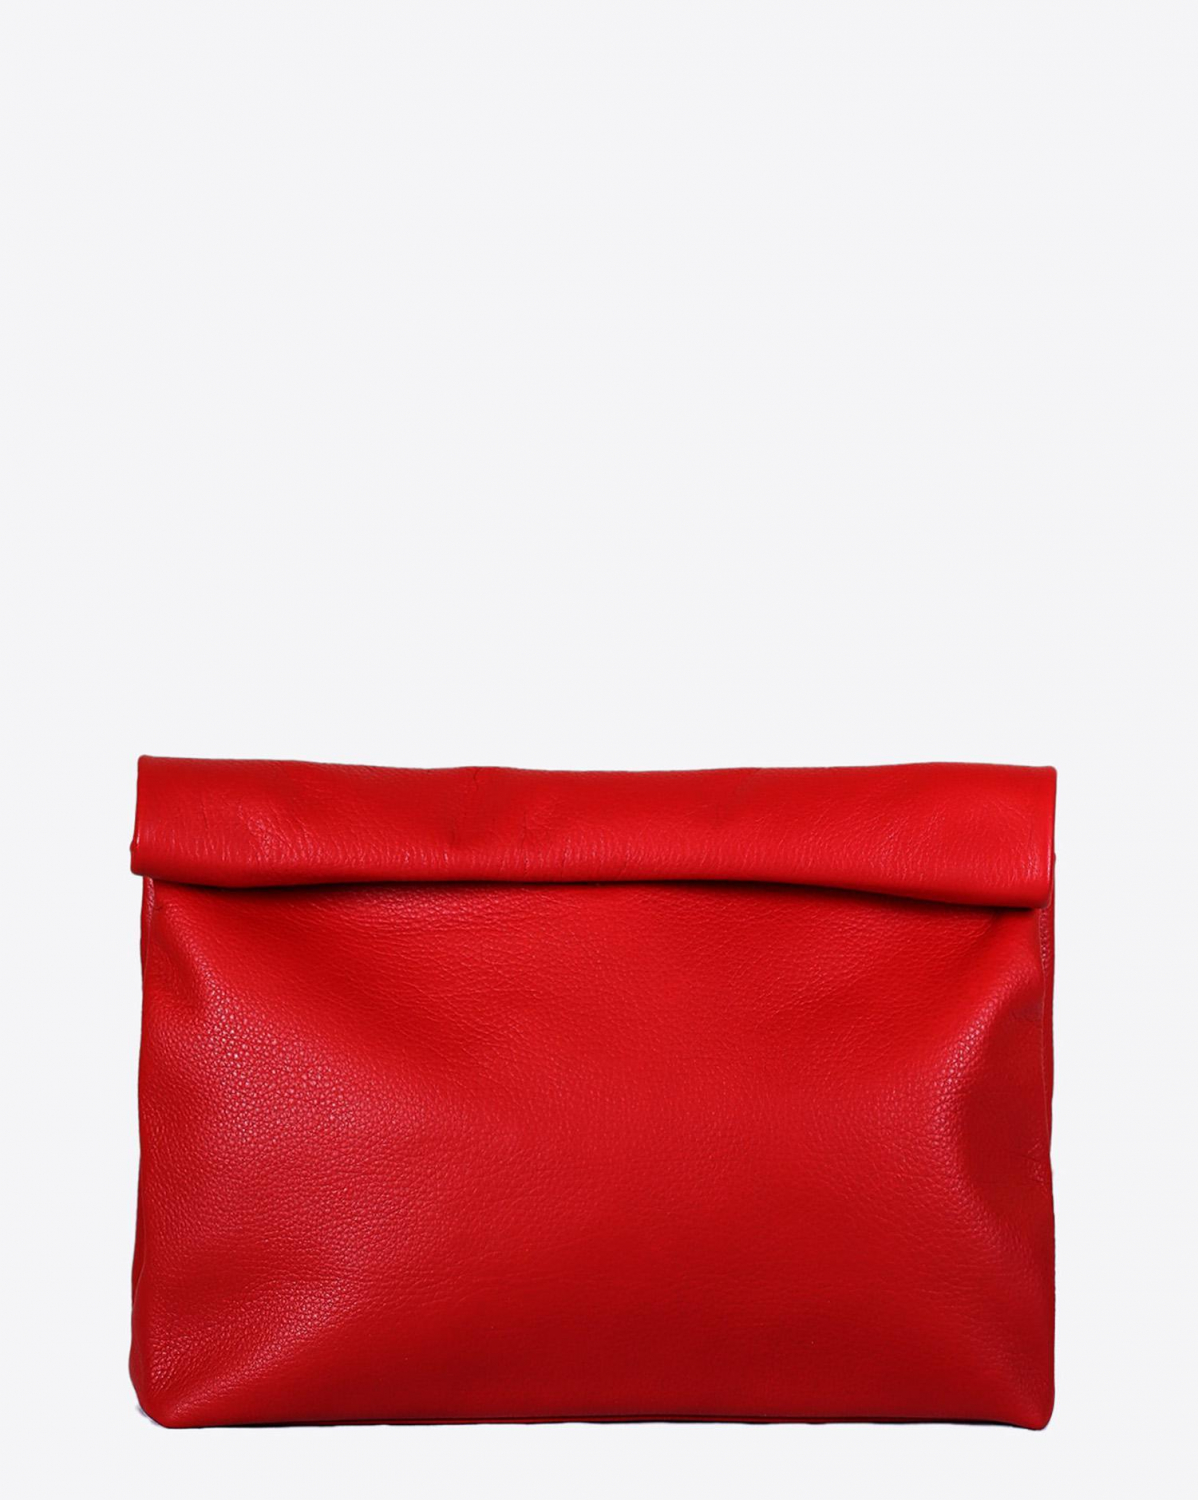 Marie Turnor Lunch Clutch -Pebble Red